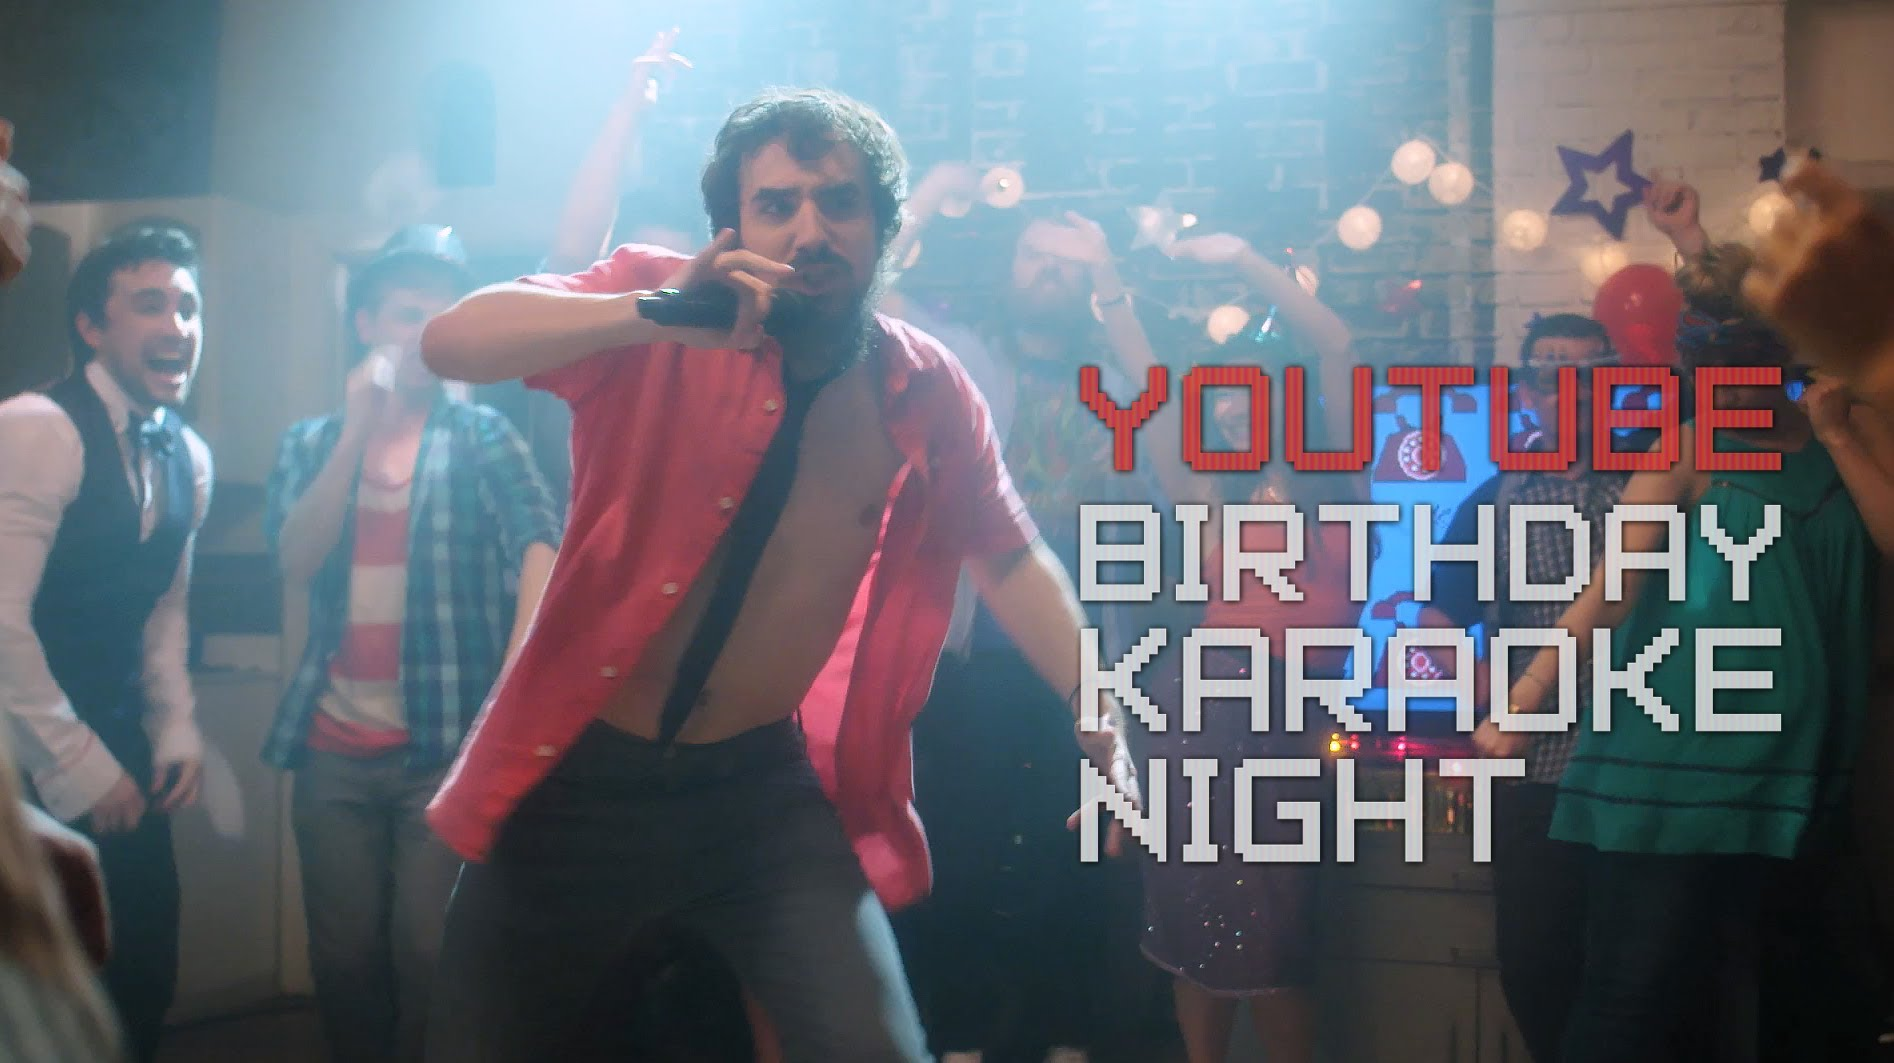 YouTube Celebrates Its 9th Birthday With a Karaoke Night Featuring Memorable Musical Moments From Its History